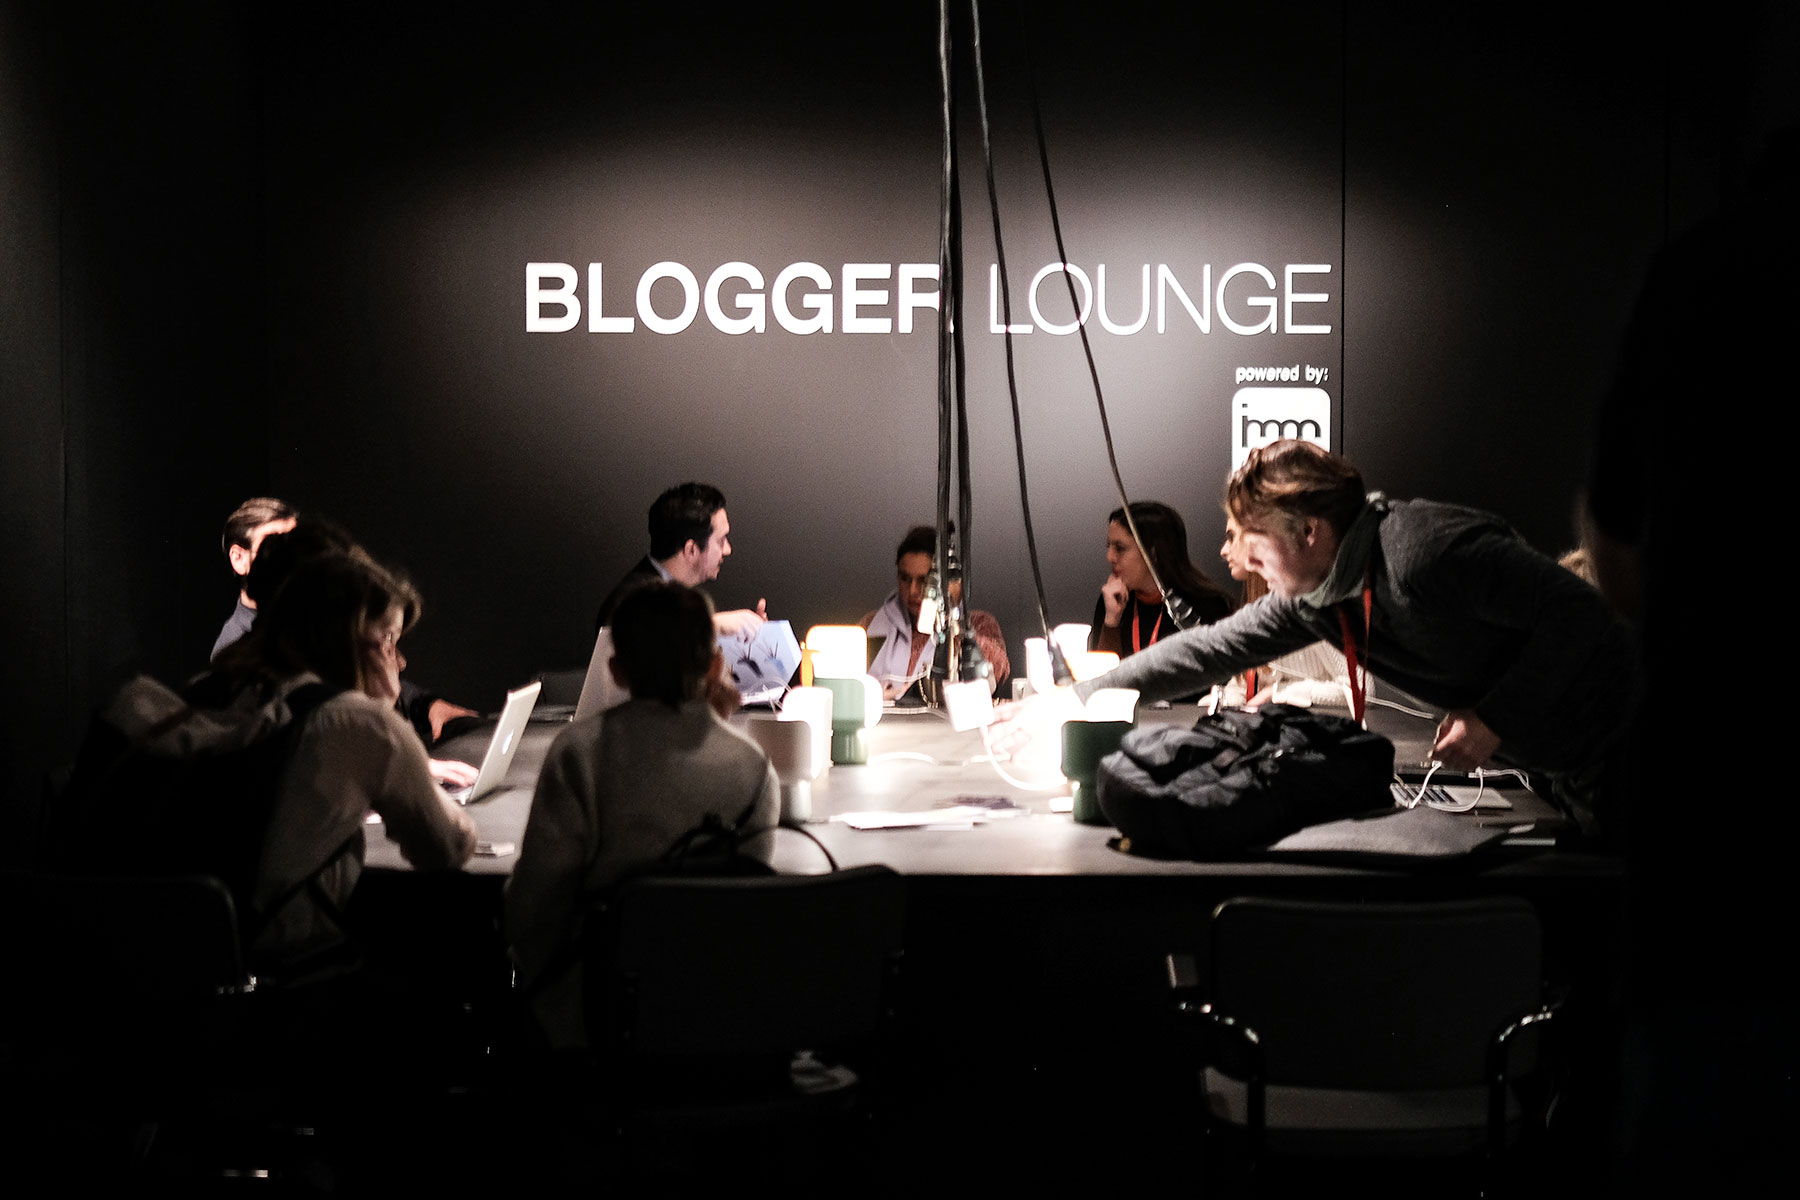 Blogger Lounge at imm cologne trade fair 2018, blog post lifetime-pieces.com